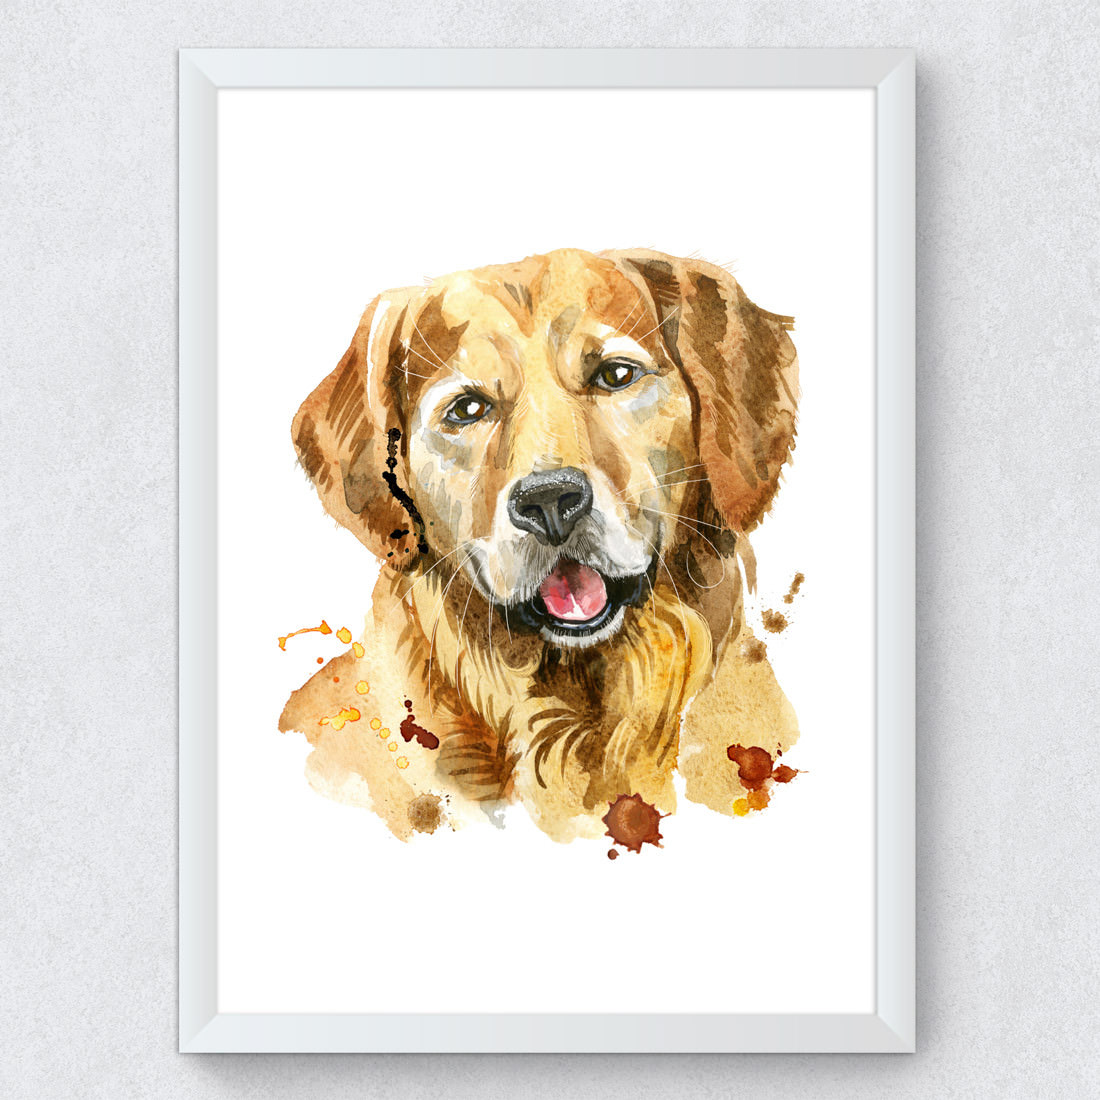 Quadro Decorativo Raca Golden Retriever Aquarela